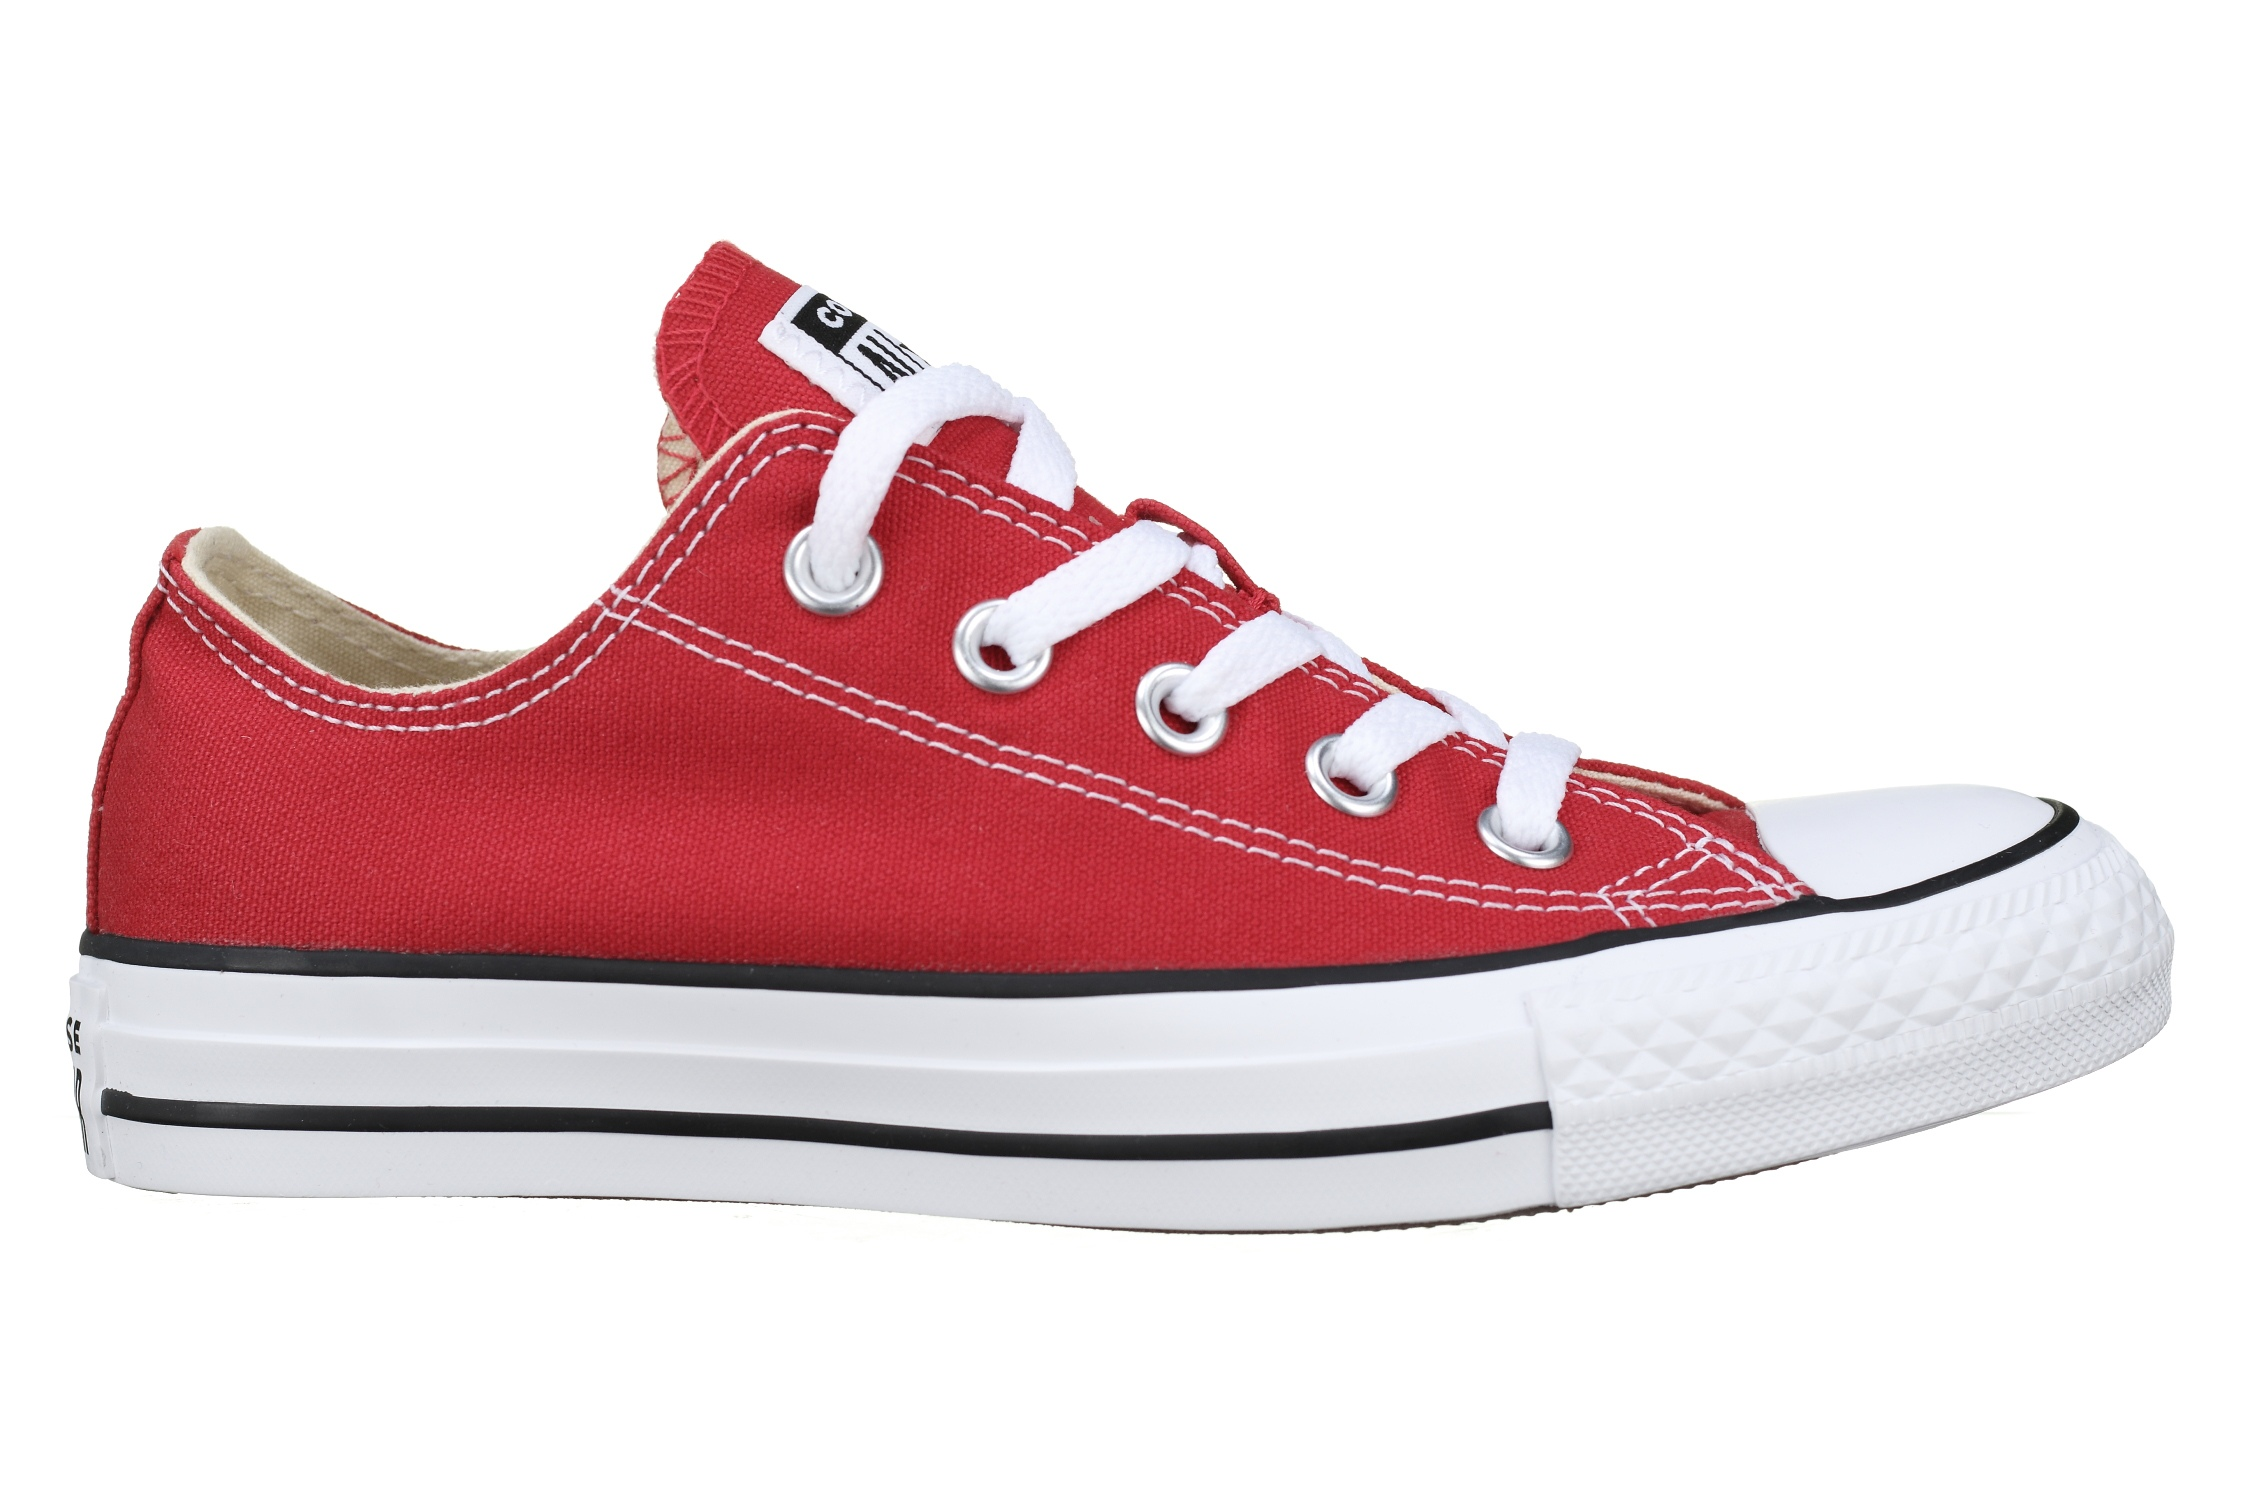 http://www.leadermode.com/181425/converse-yths-all-star-ox-3j236c-red.jpg